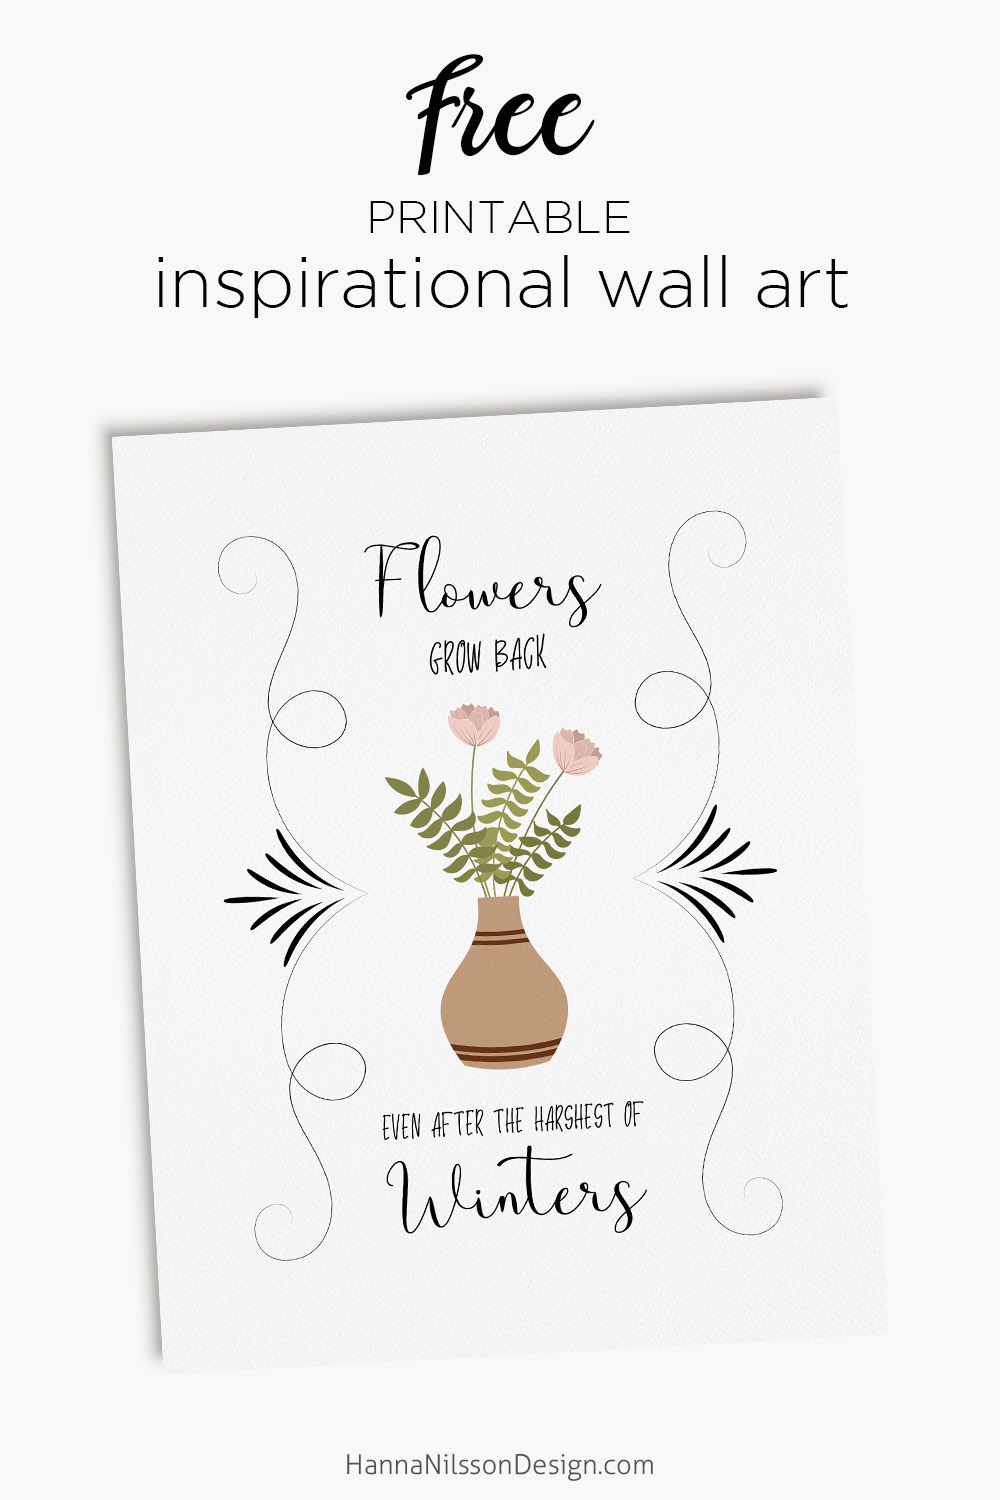 graphic relating to Free Printable Wall Art Flowers identified as Bouquets mature again inspirational wall artwork printable Hanna